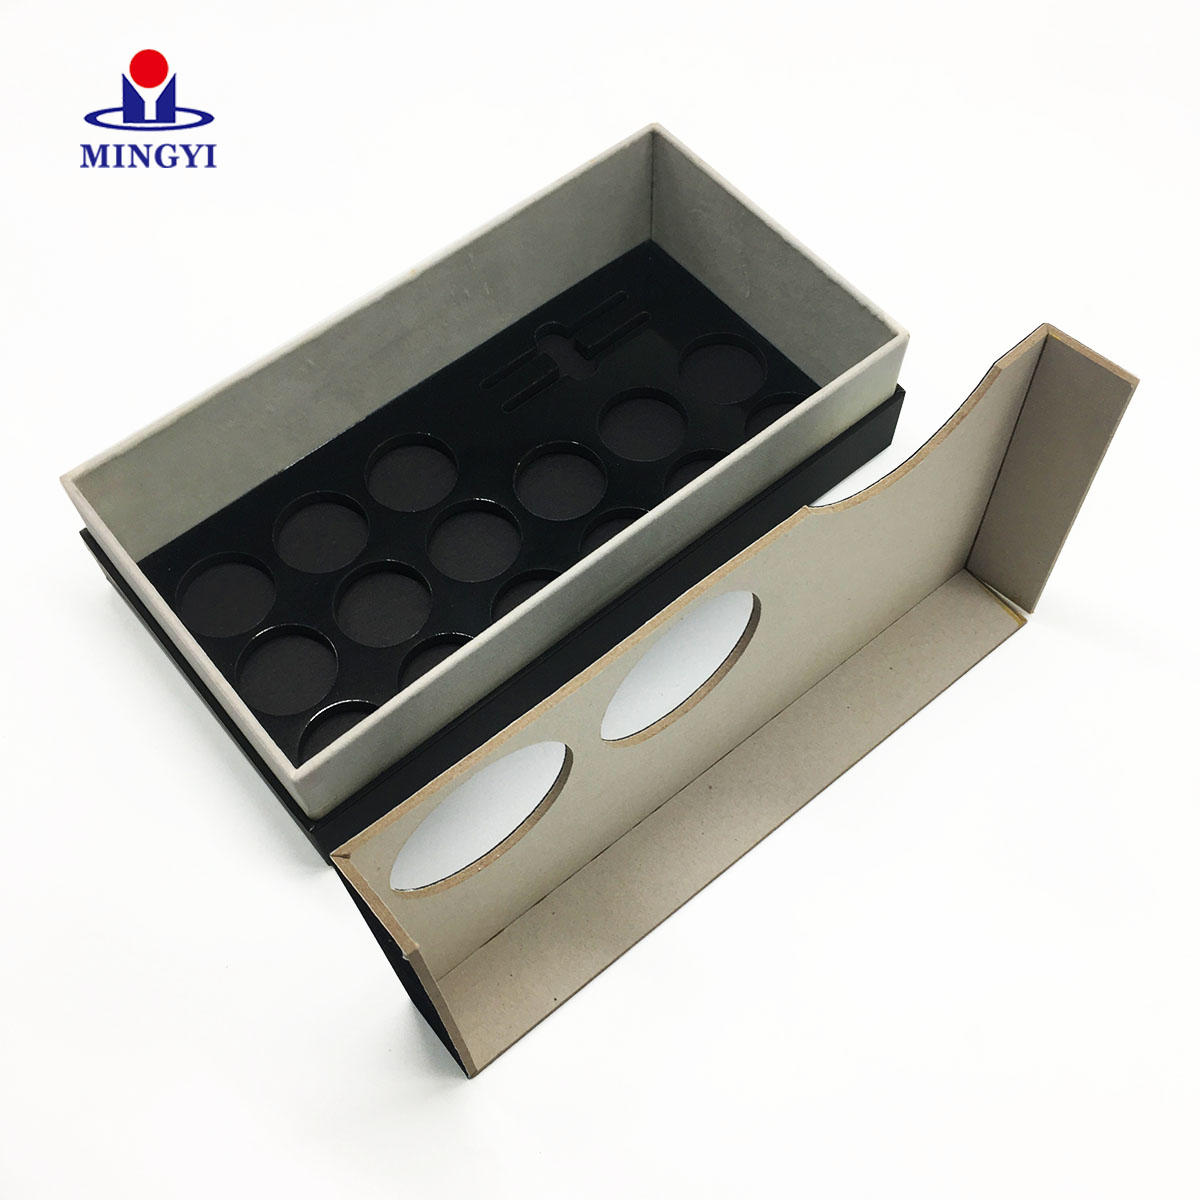 China supplier 2019 new design eyeshadow cosmetic packaging custom logo with lid